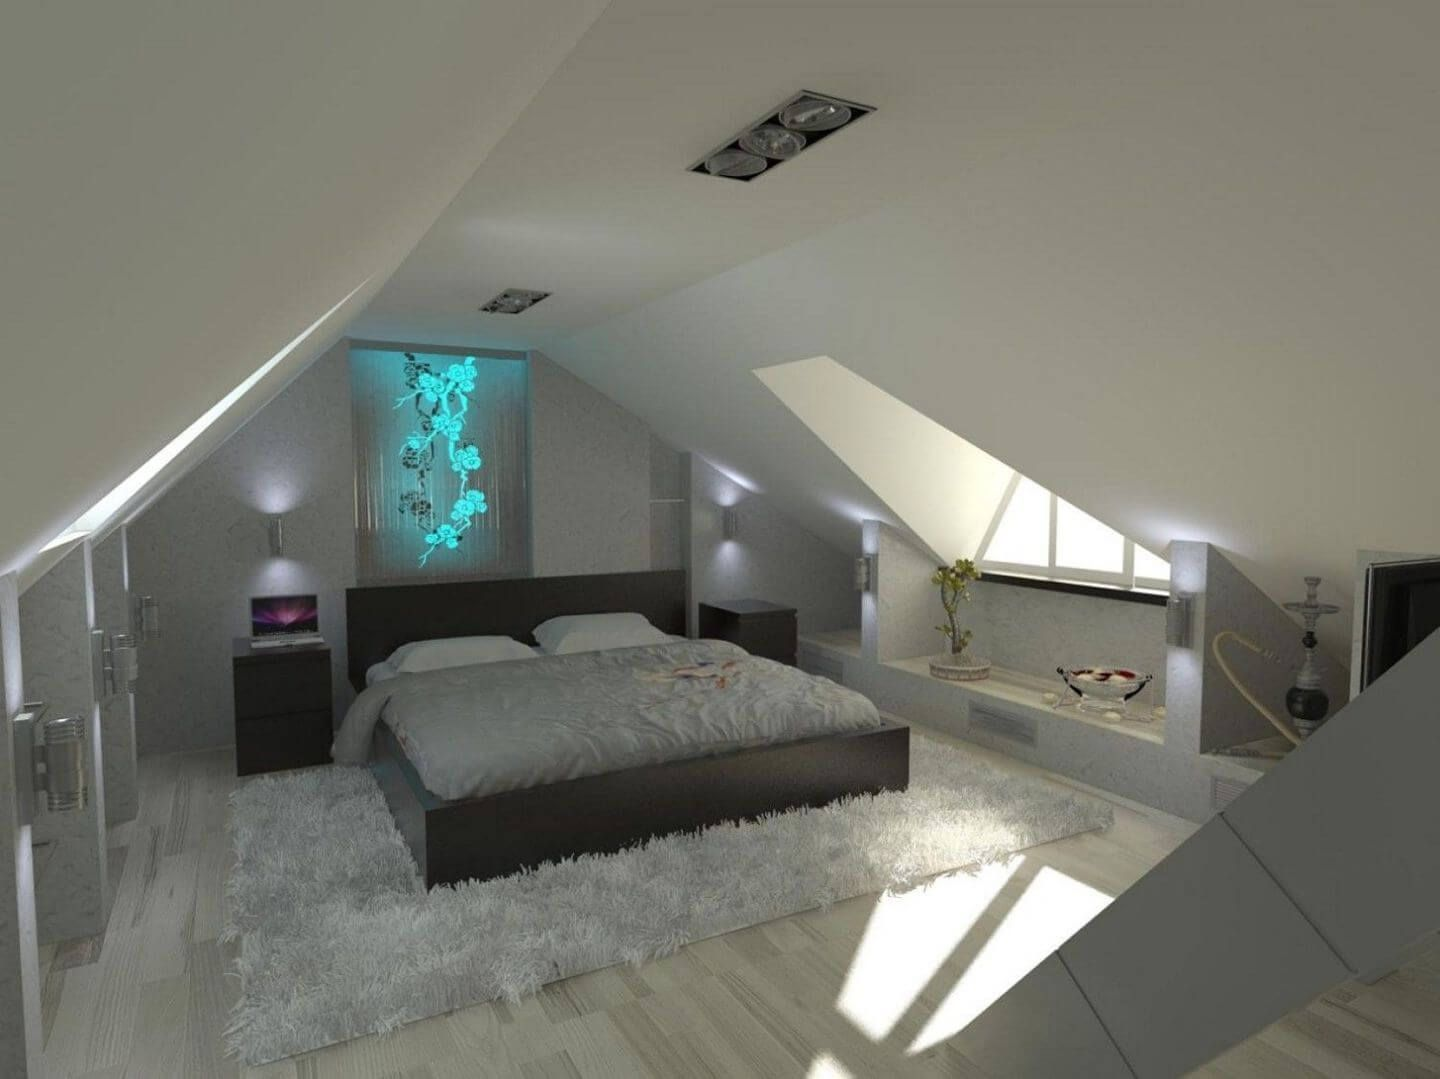 10 attic bedroom ideas 2020 (creative and awesome) in 2020